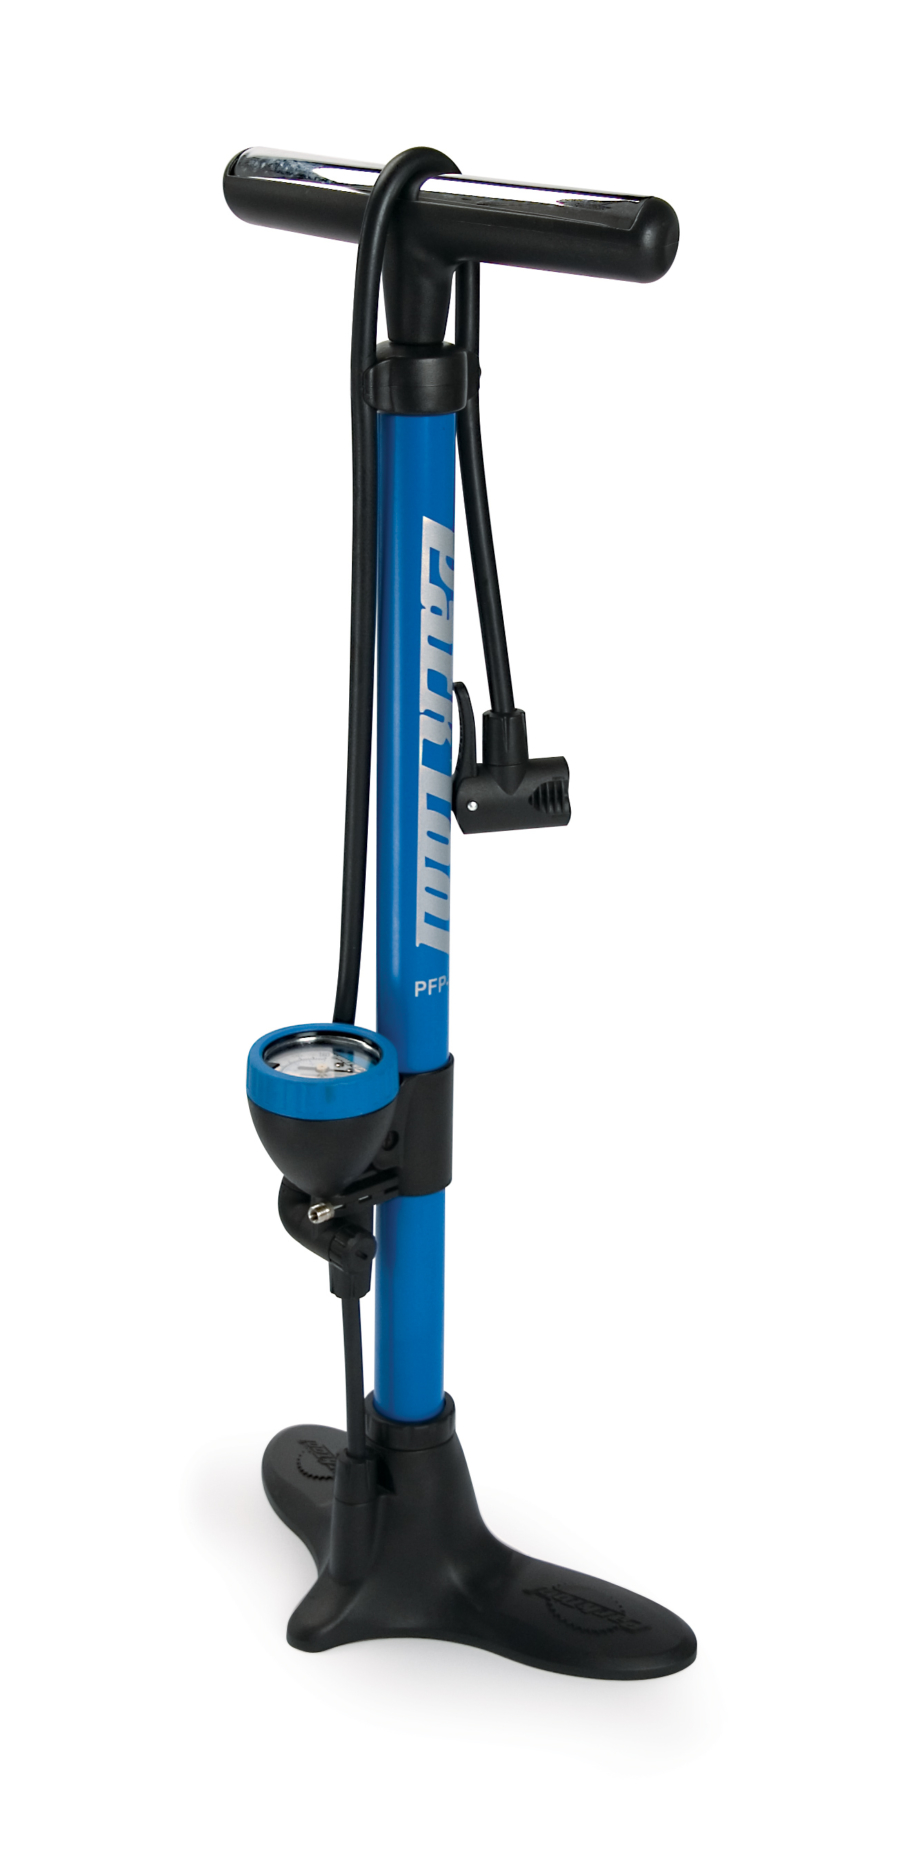 The Park Tool PFP-3 Home Mechanic Floor Pump, enlarged